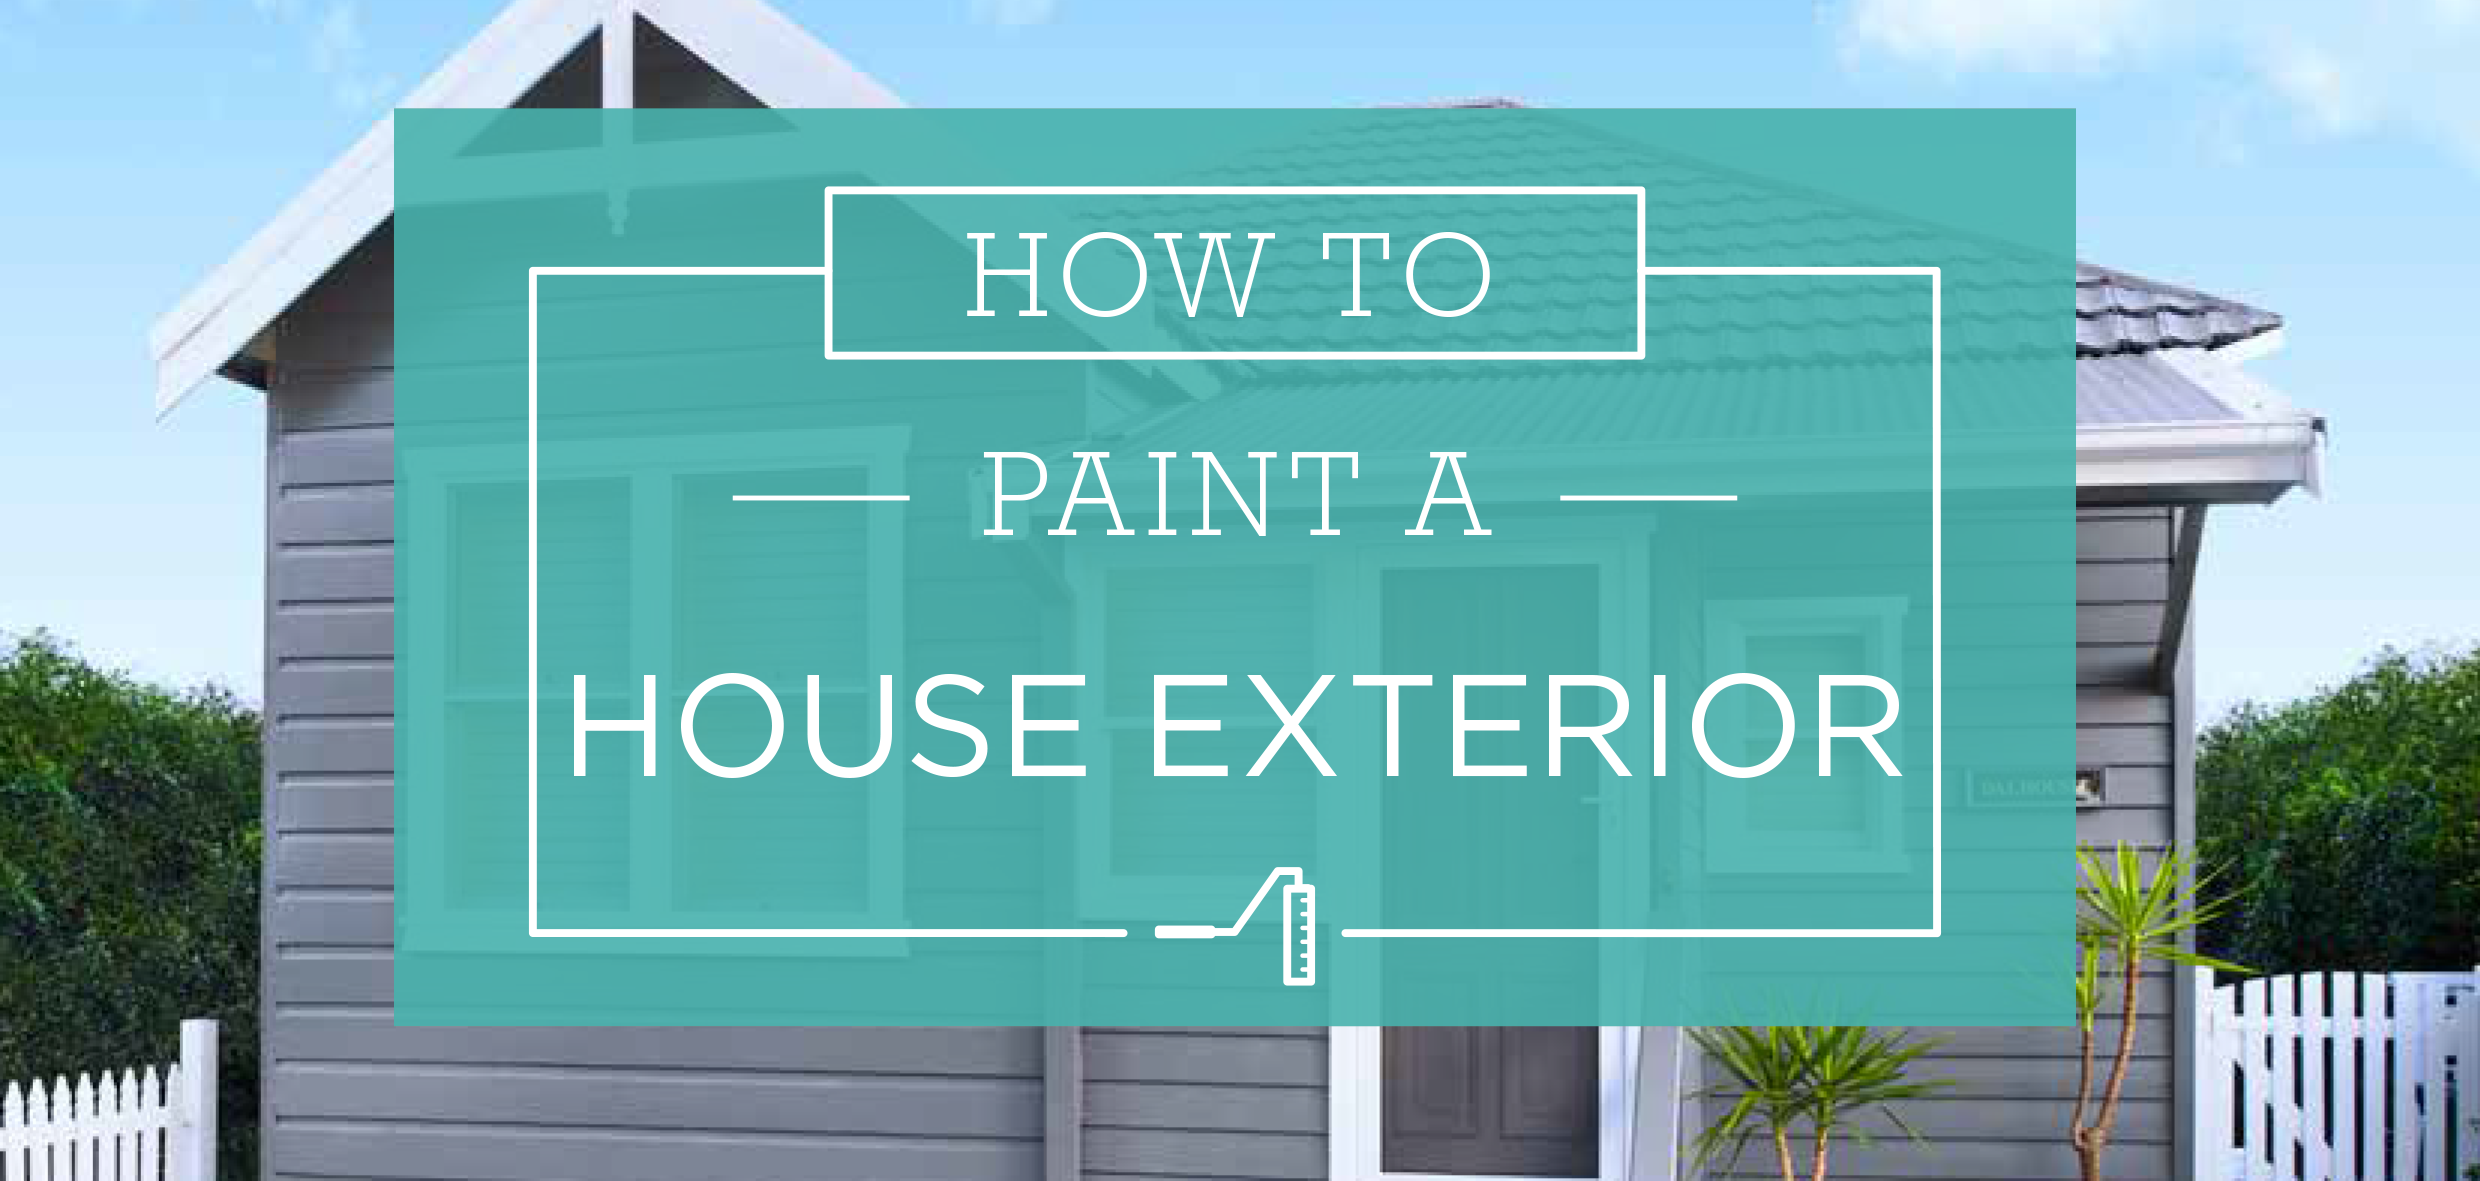 How to Prepare Exterior Walls for Painting | Taubmans